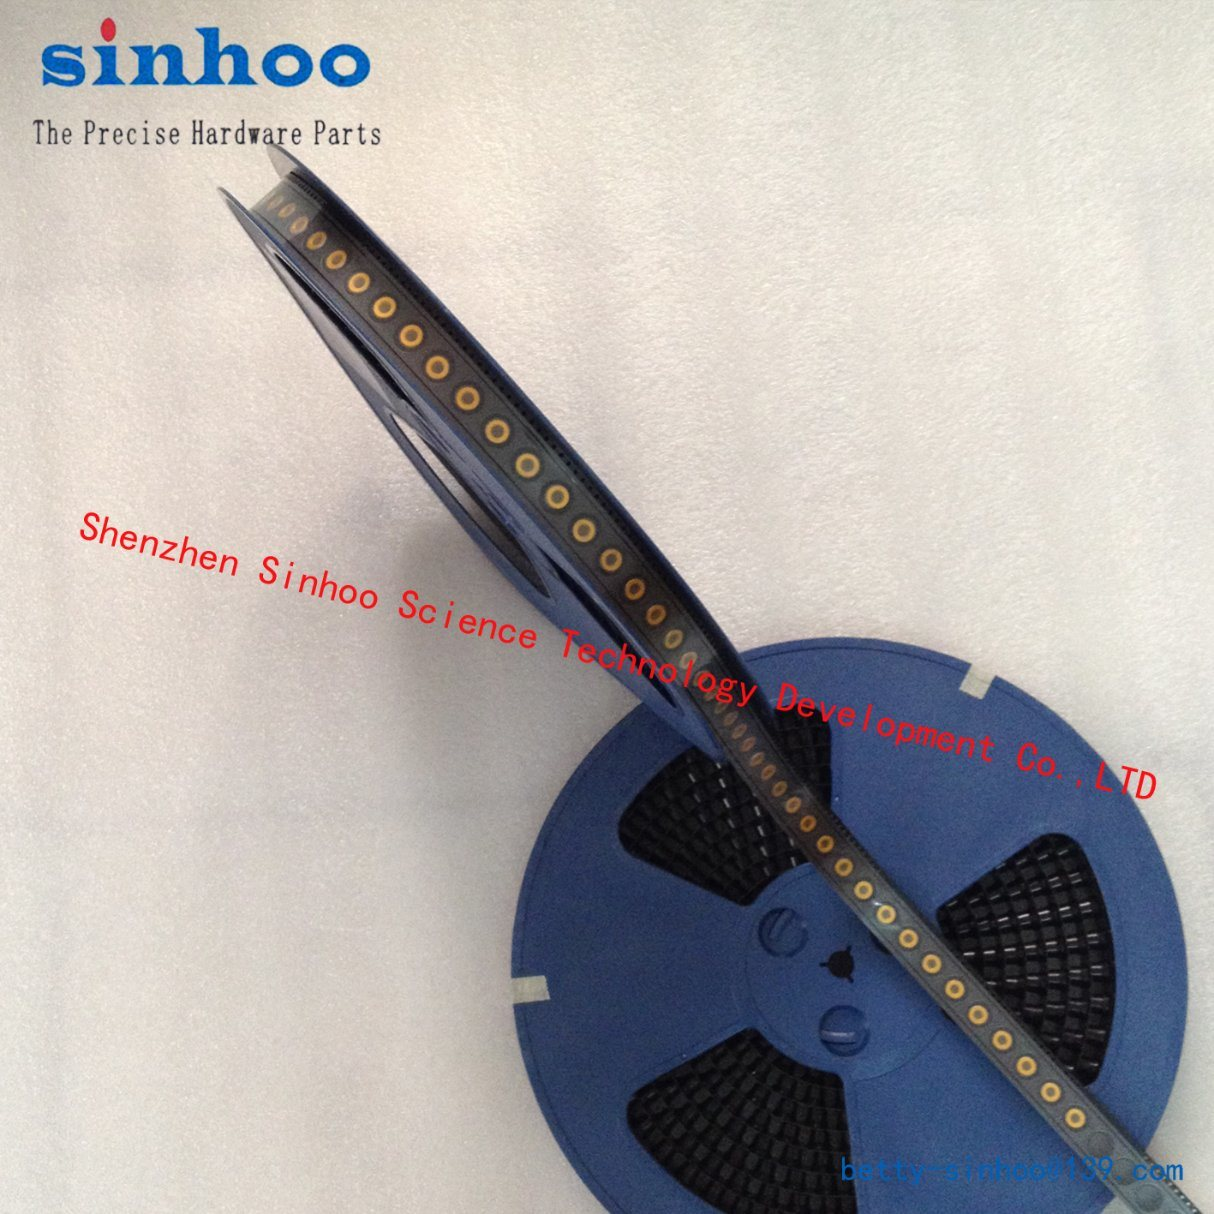 Smtso-M3-8et, SMD Nut, Surface Mount Fasteners SMT Standoff, SMT Spacer, Reel Package, Stock, Steel,